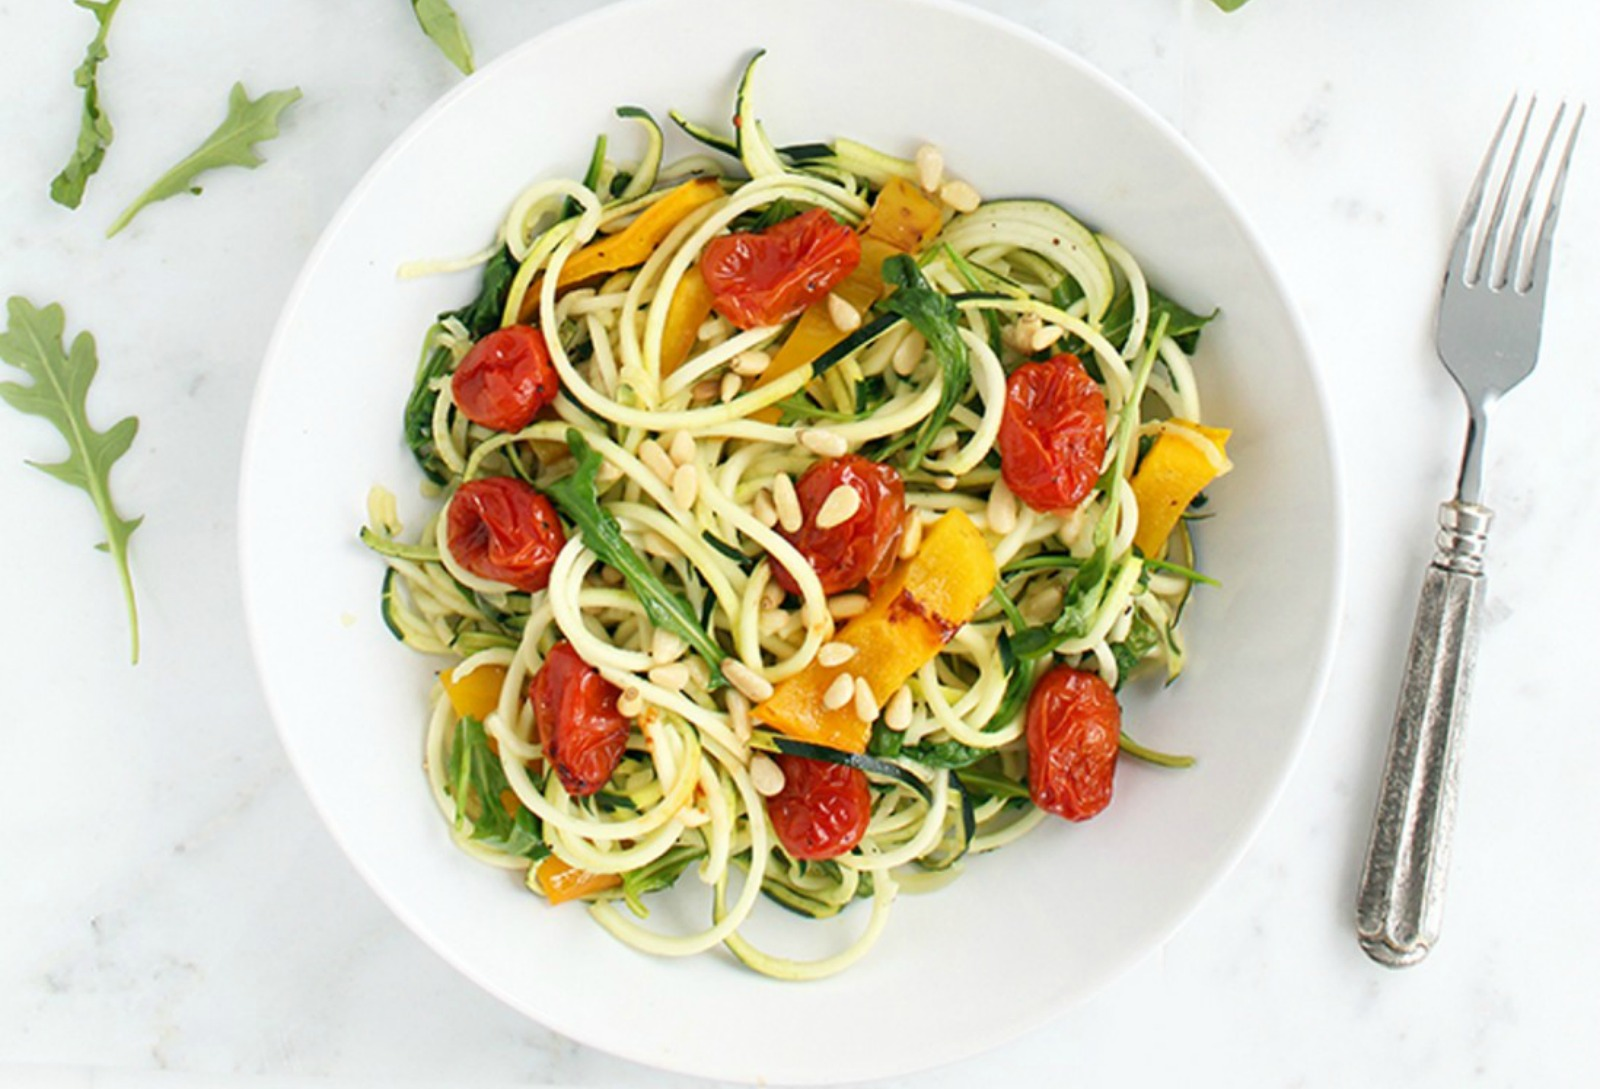 Roasted-Pepper-Zucchini-Pasta-with-Balsamic-Roasted-Tomatoes-Baby-Arugula-and-Toasted-Pine-Nuts-1098x800 (1)